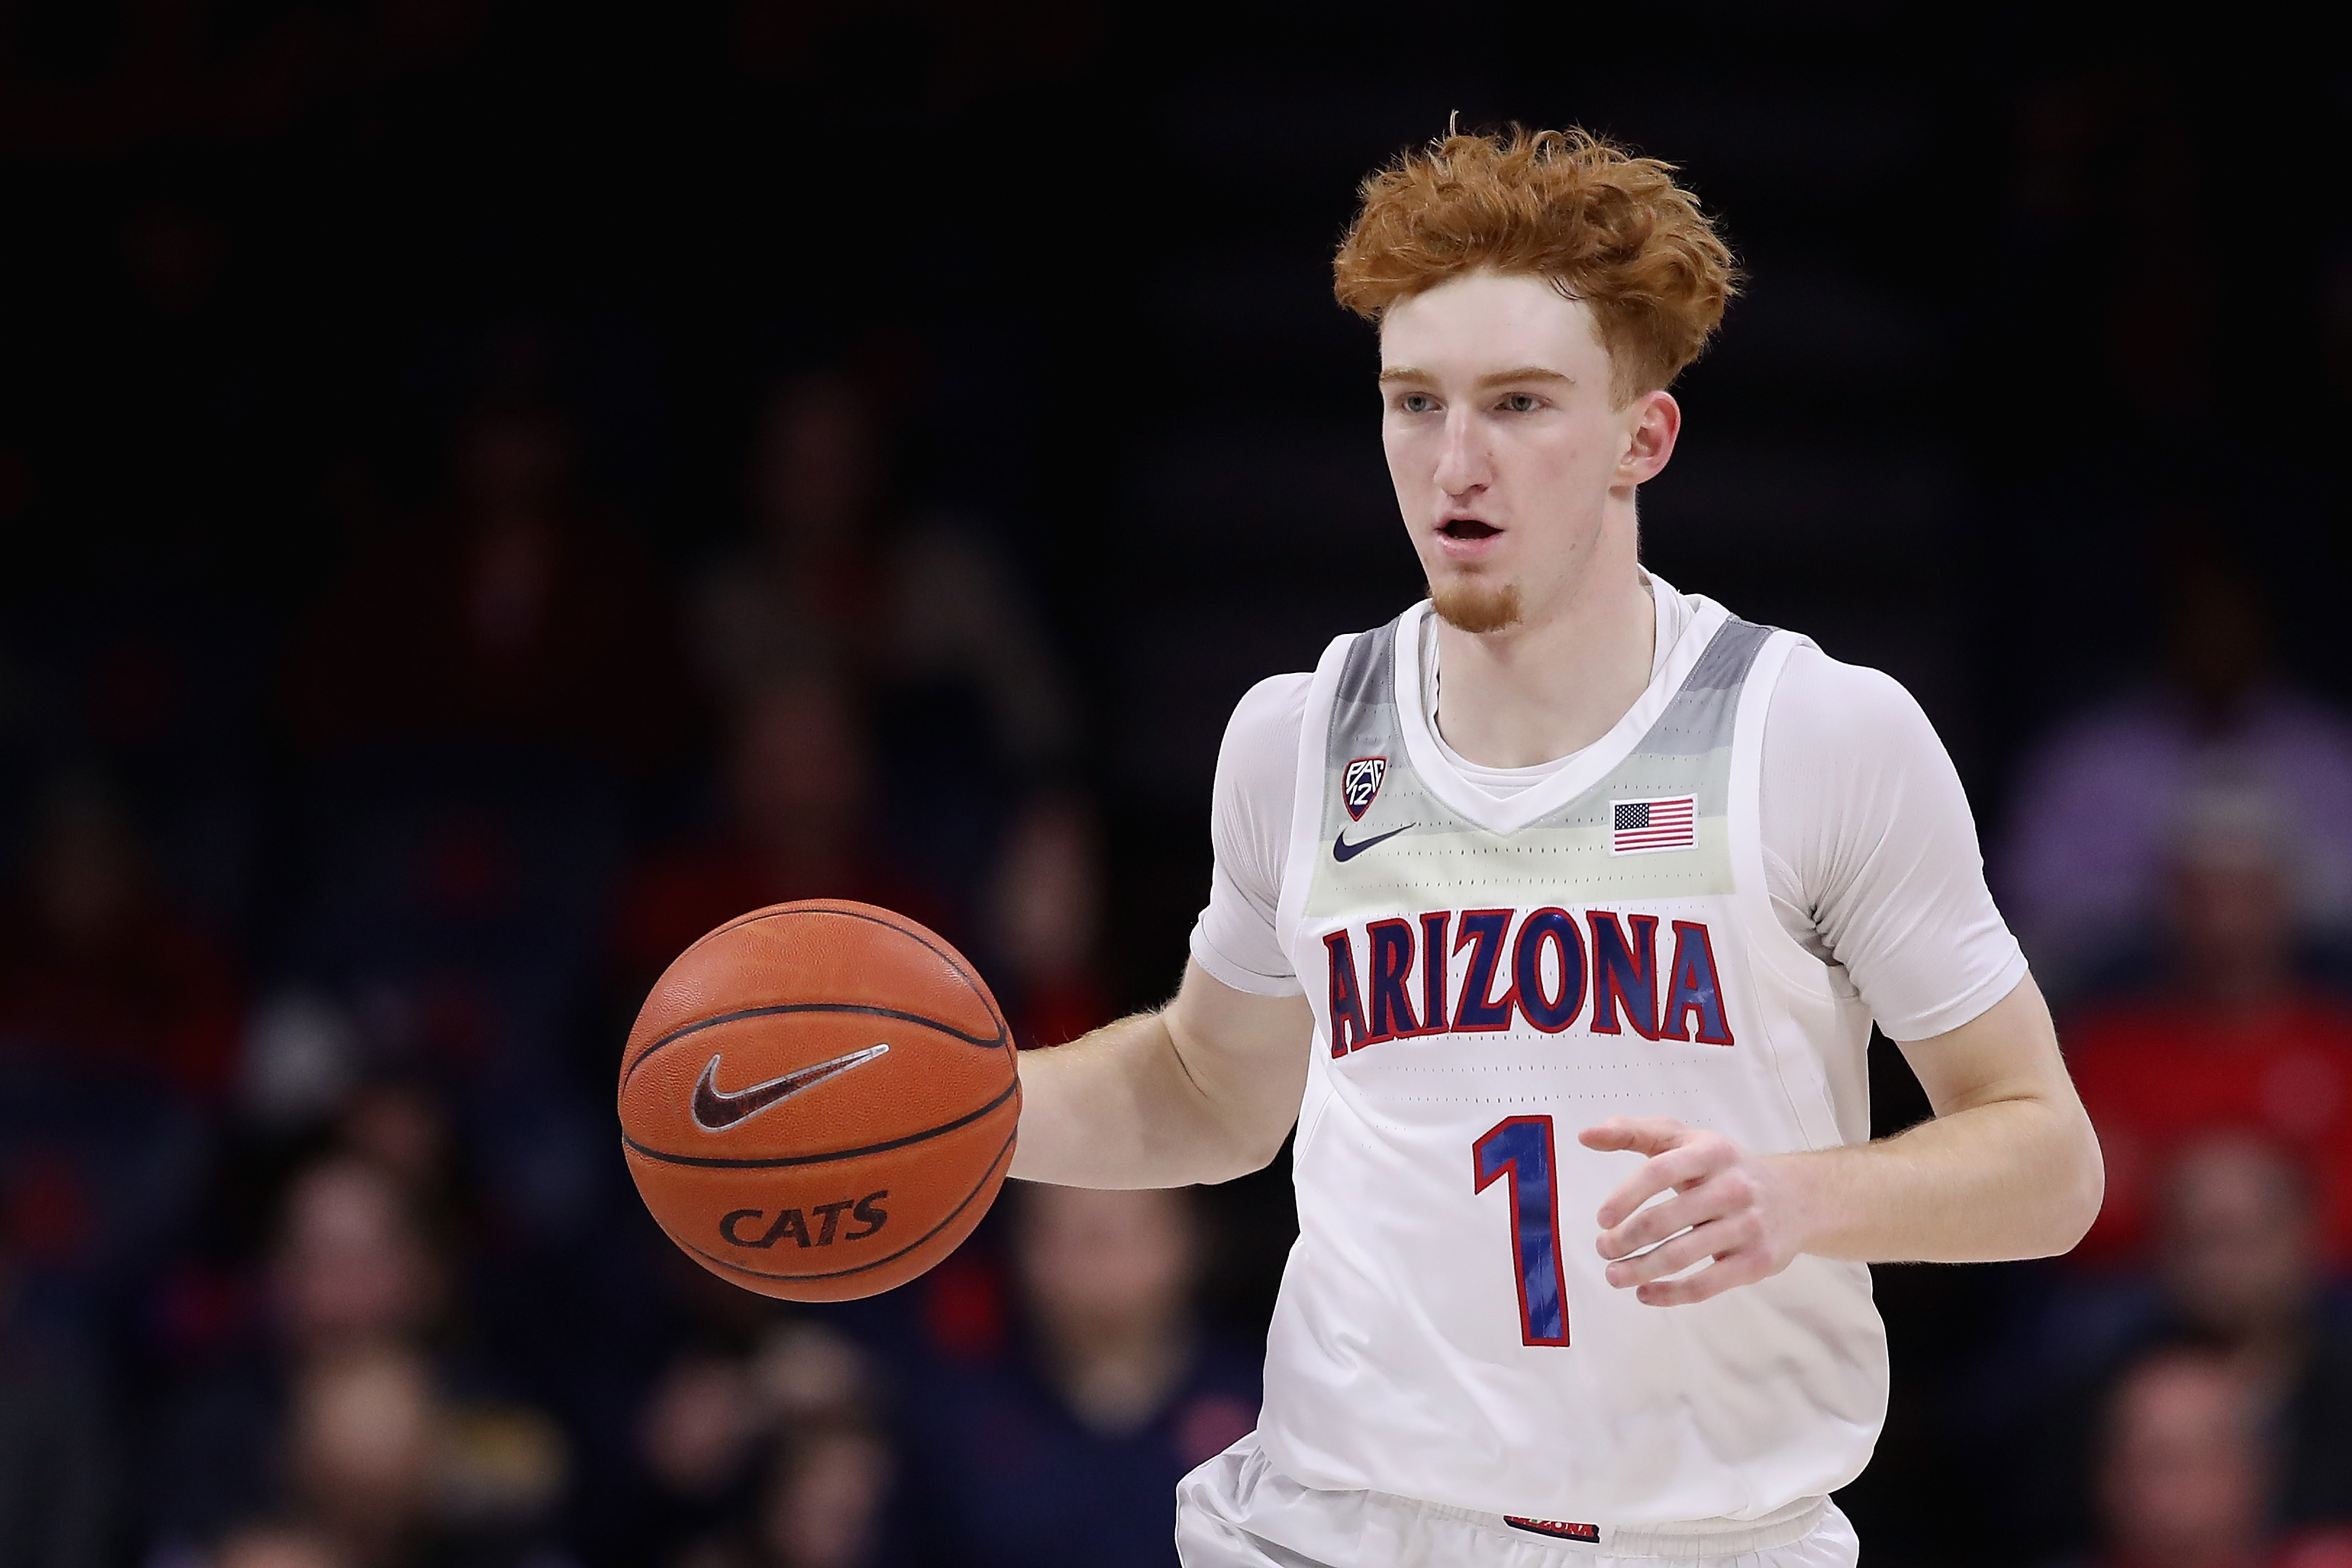 arizona-colorado-basketball-preview-predictions-picks-time-tv-channel-what-to-watch-keys